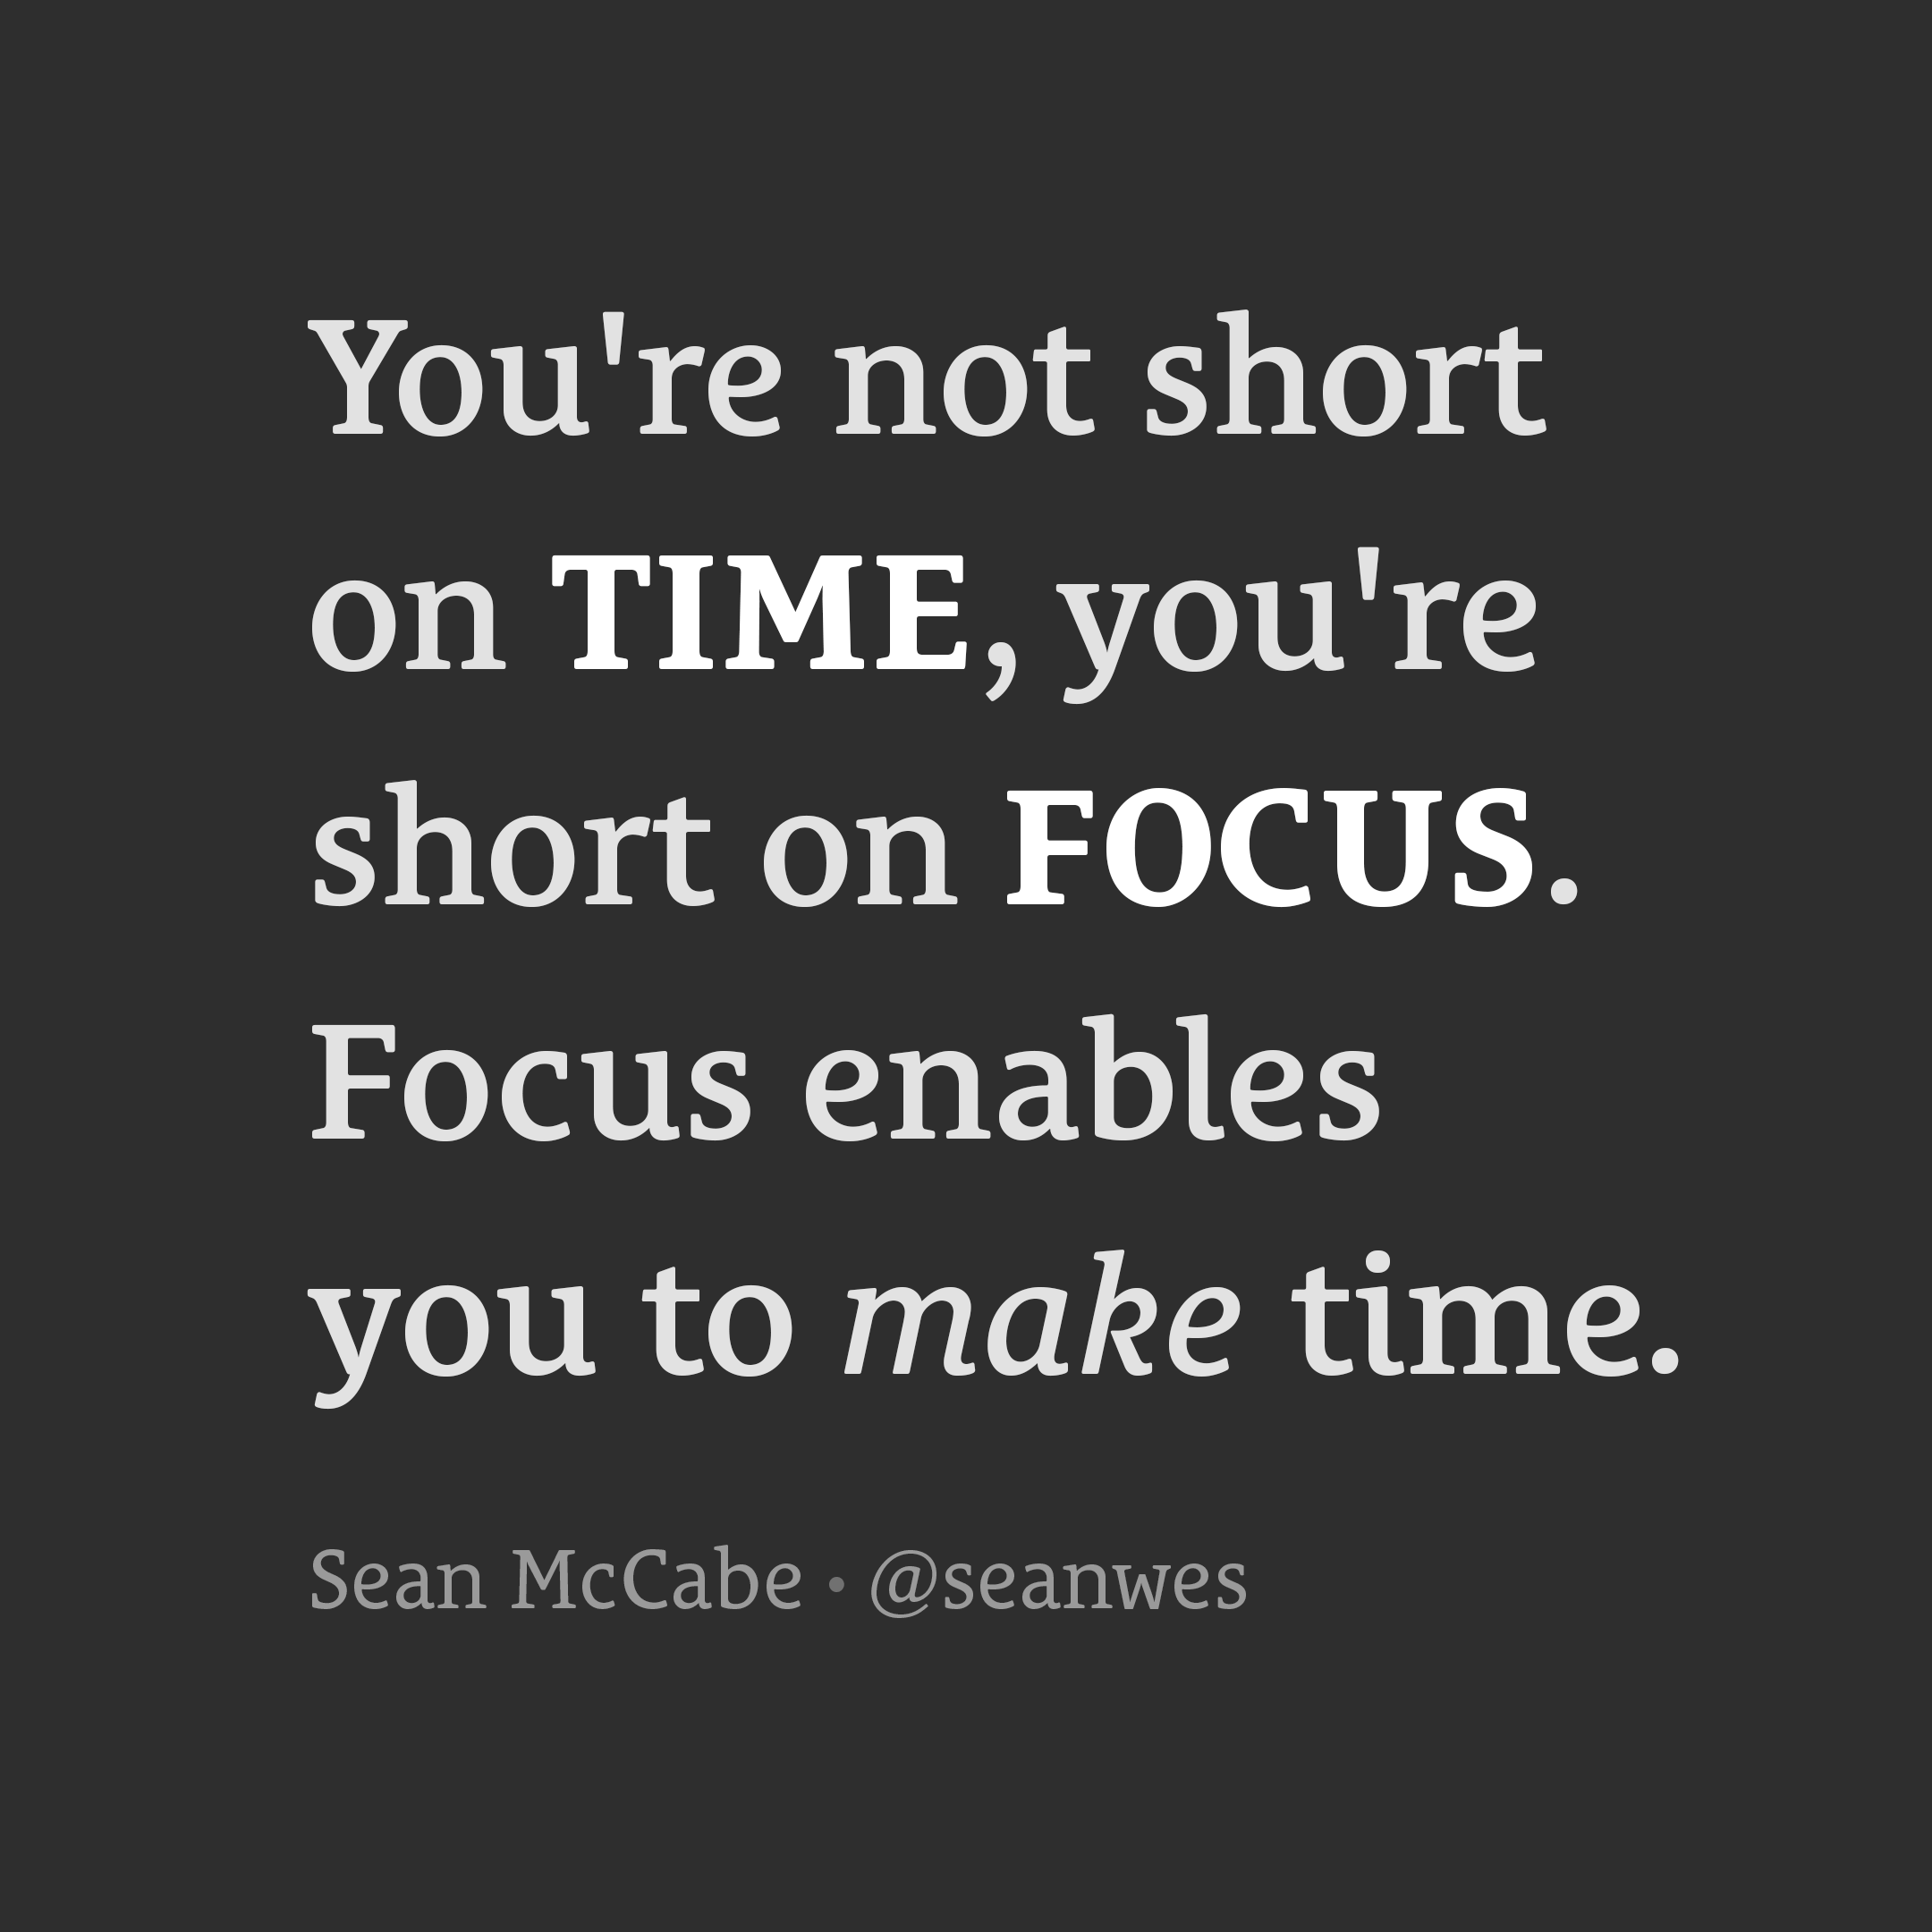 You're not short on time, you're short on focus.